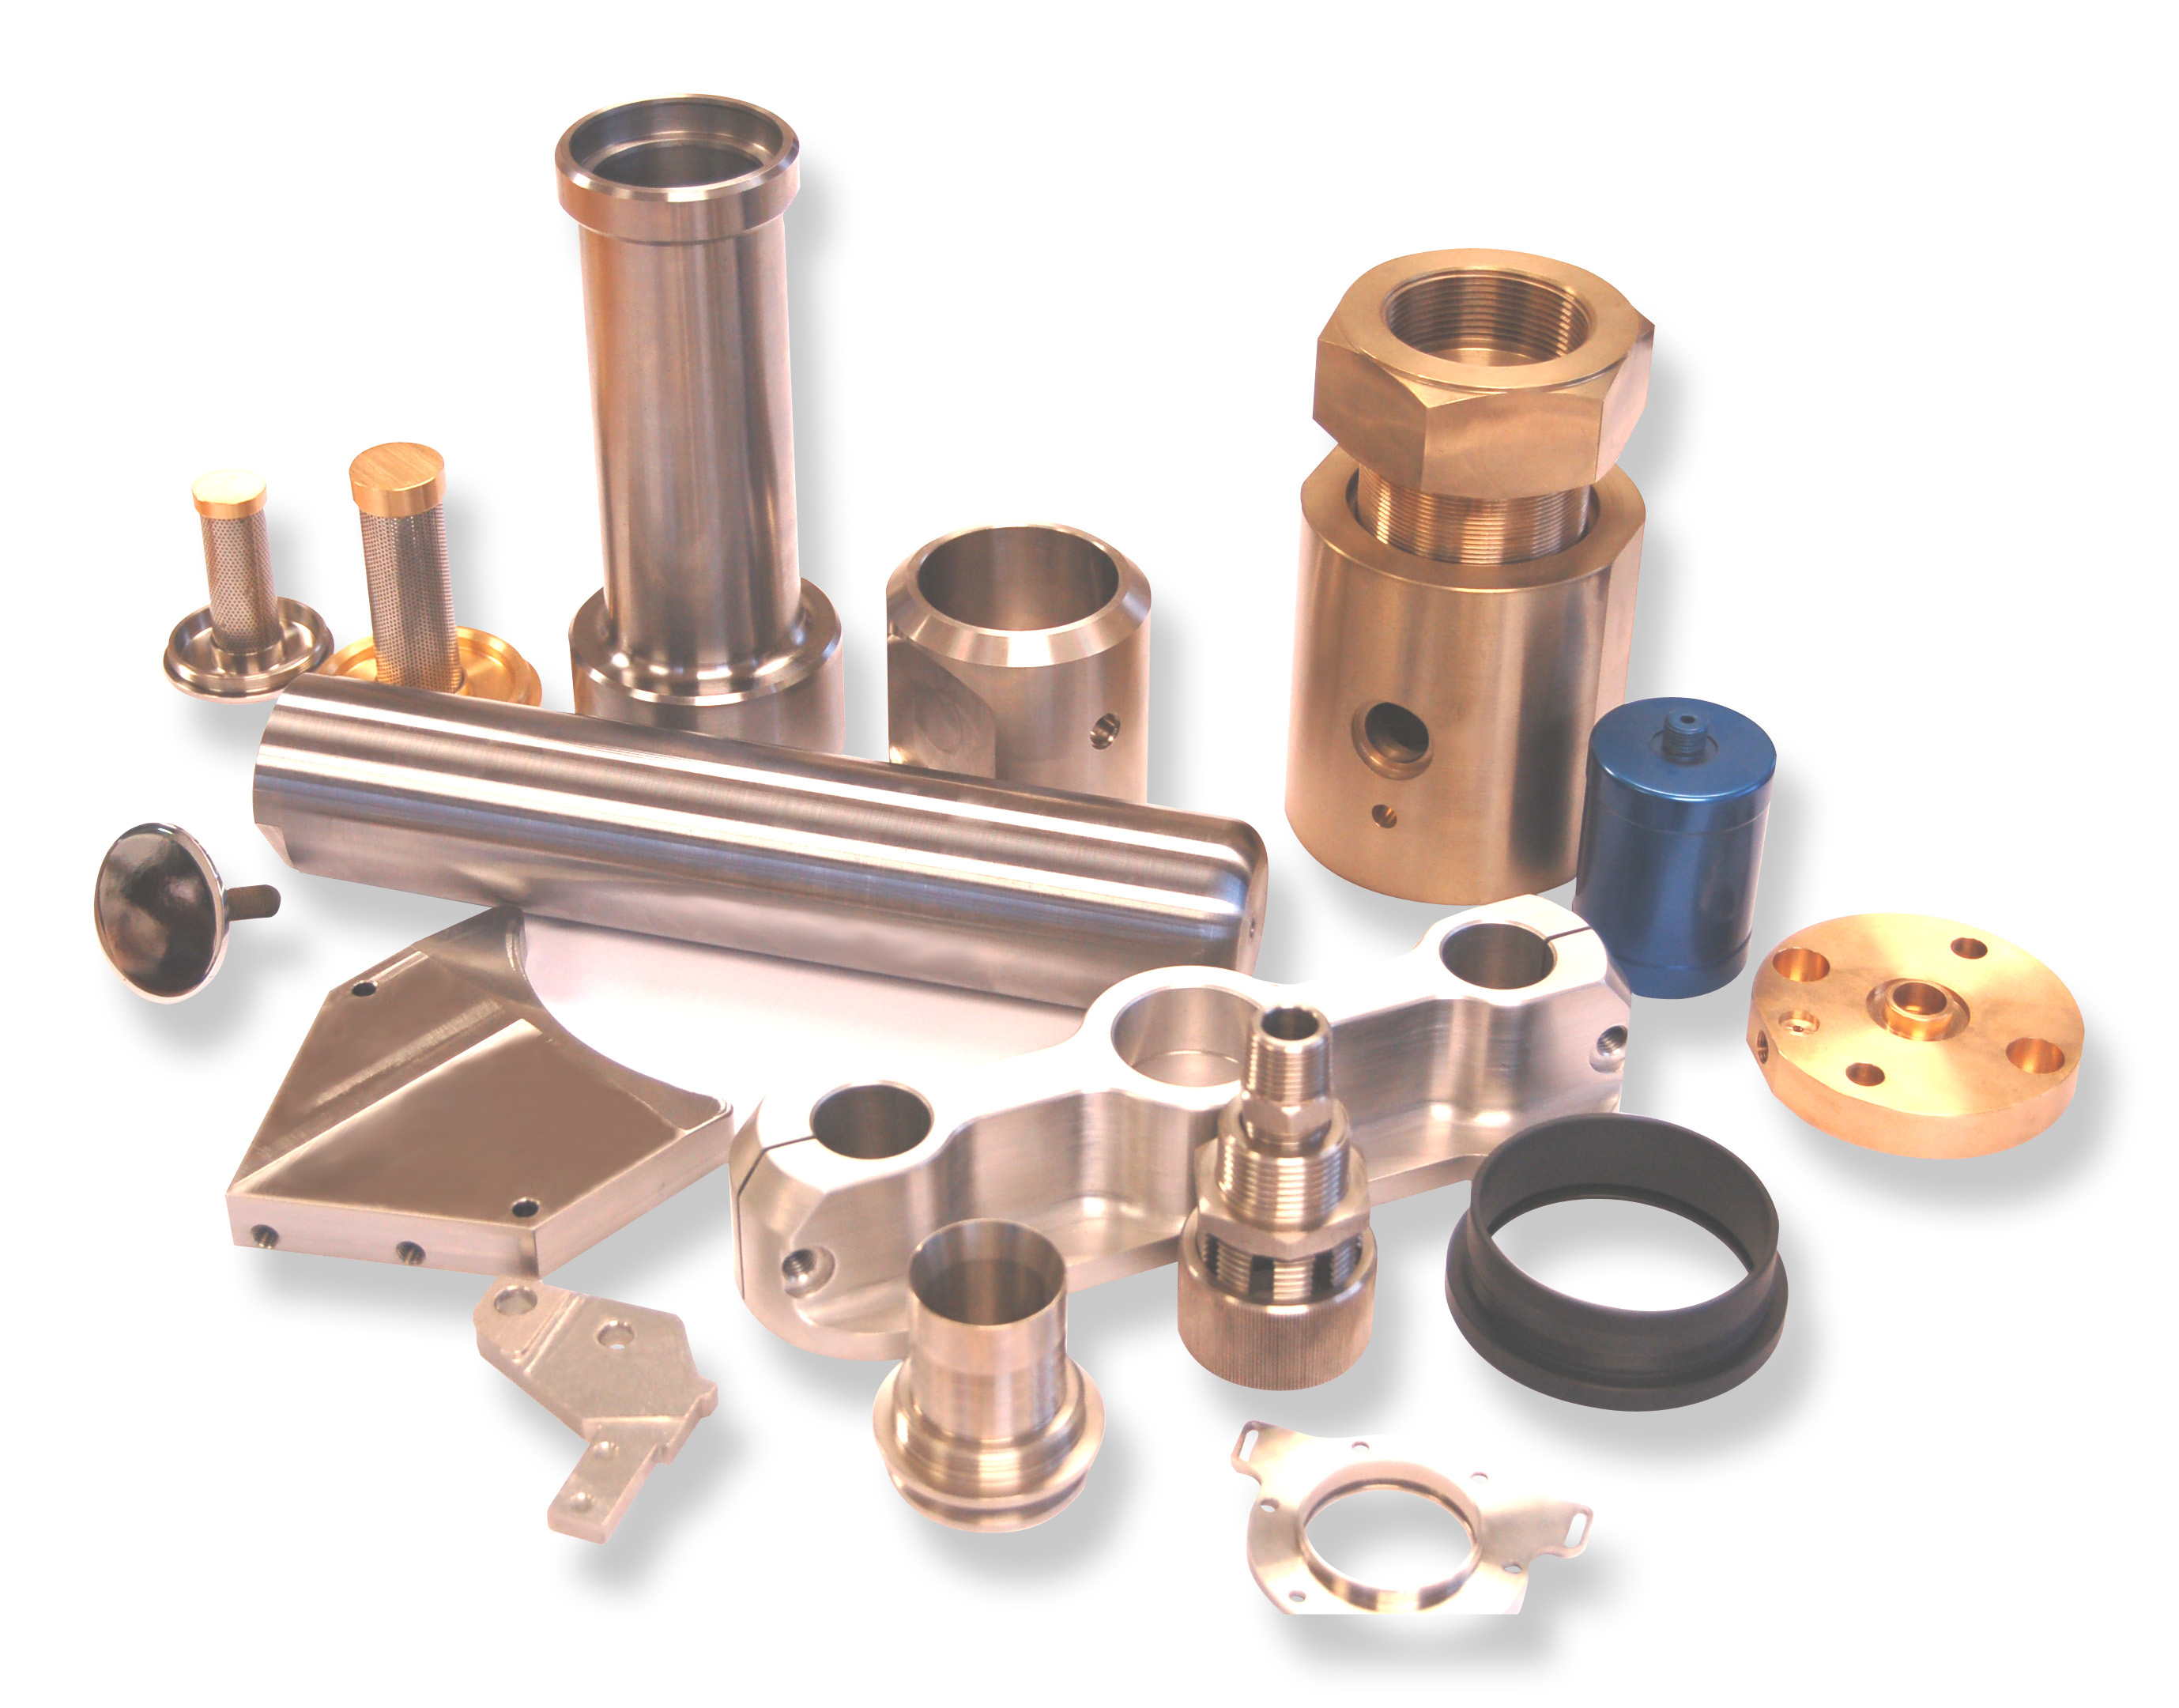 A selection of turned, milled and drilled parts